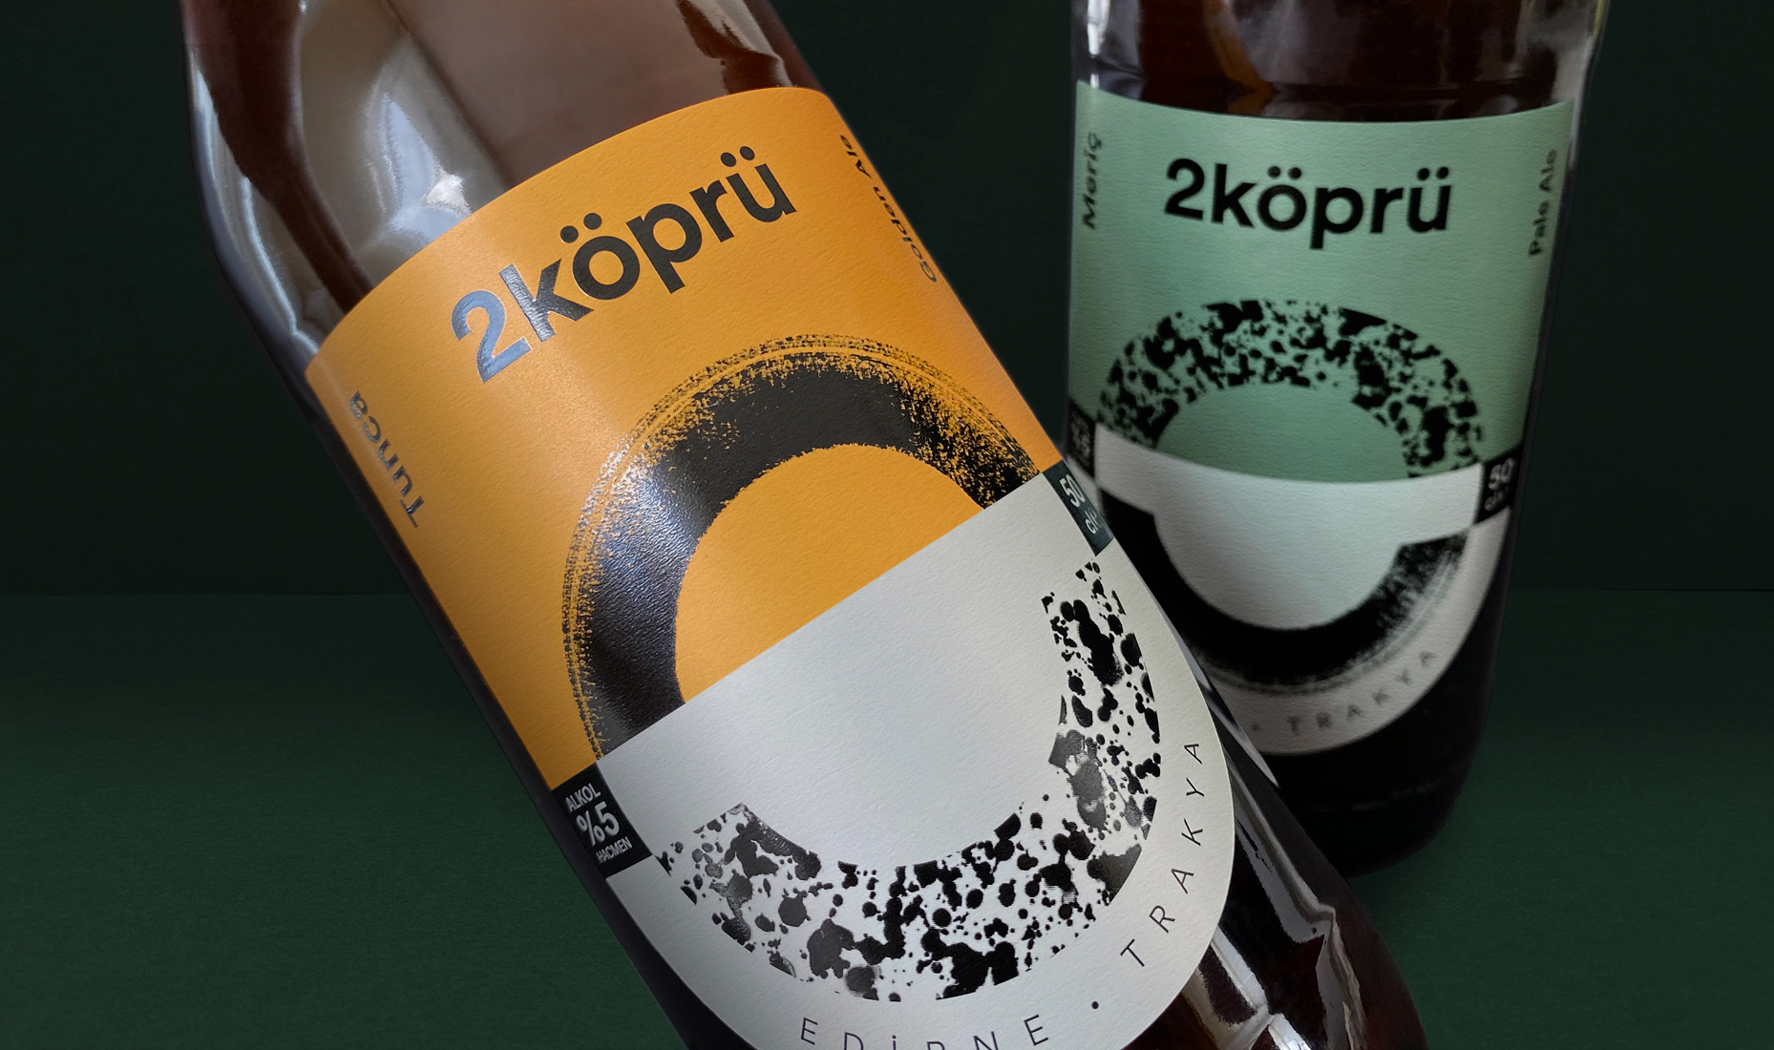 2kopru Branding and Packaging Design by Pata Studio